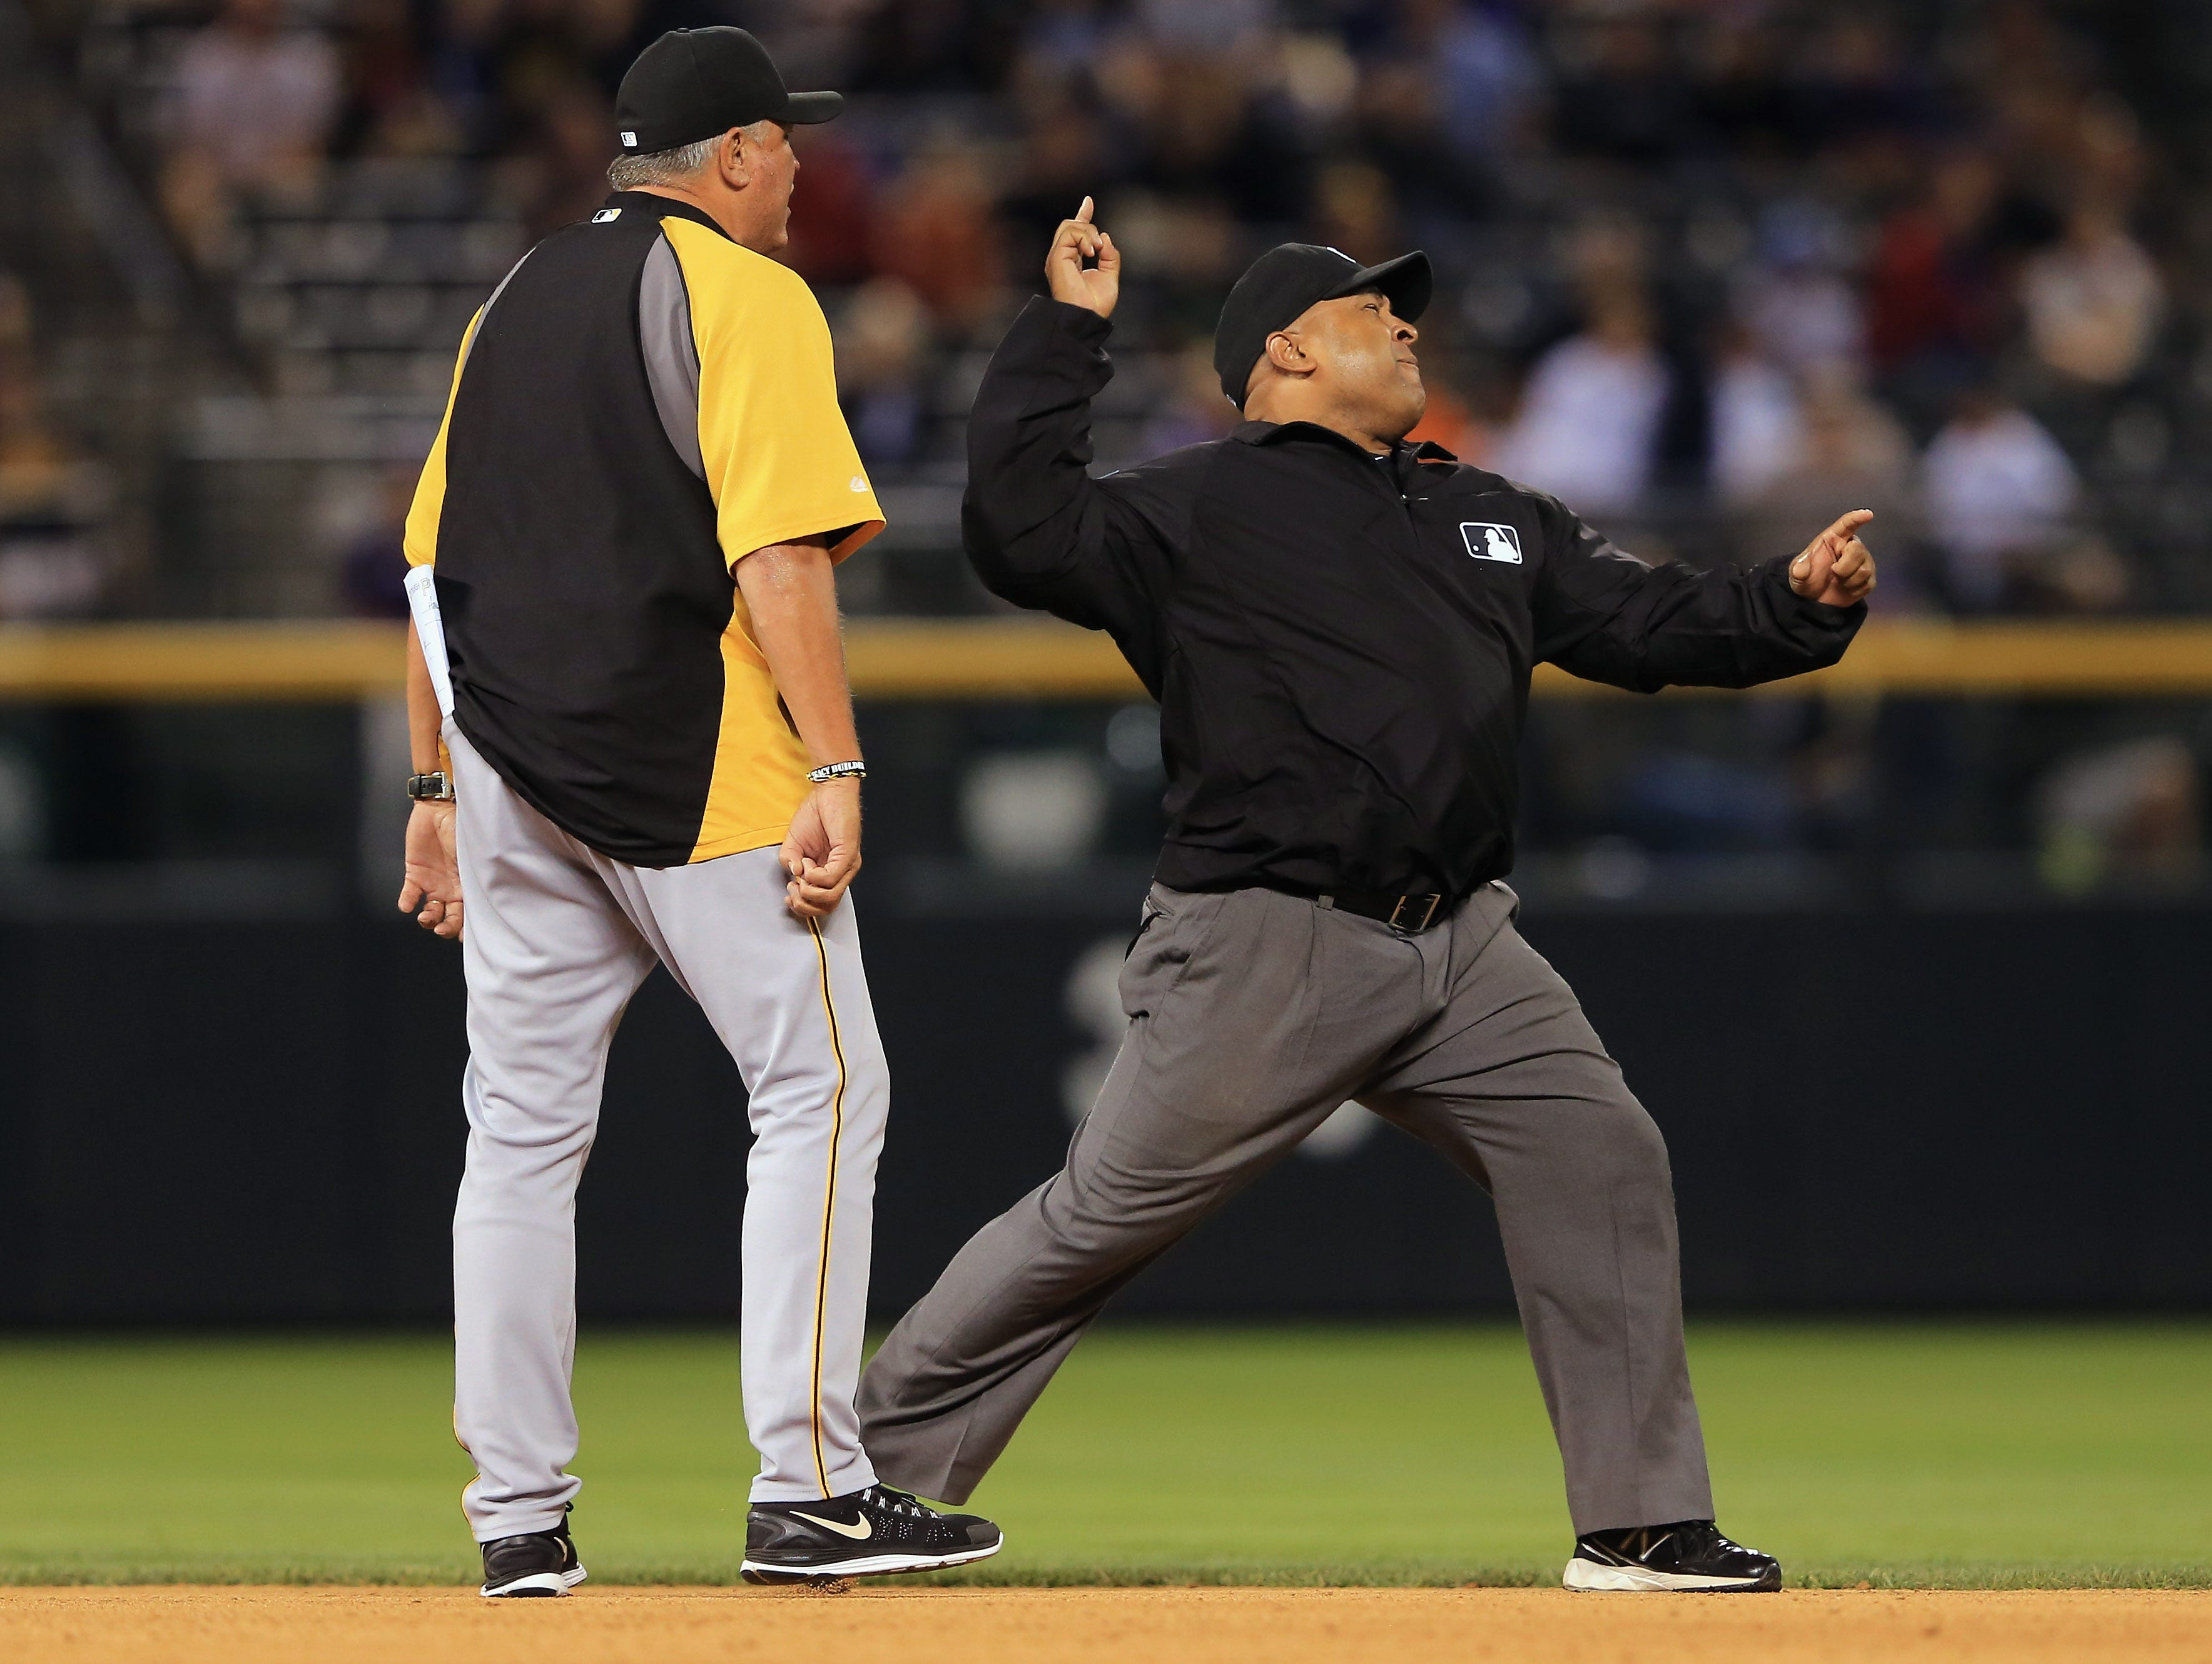 Aug. 10: Pirates manager Clint Hurdle is ejected from the game by second base umpire Adrian Johnson after arguing a call when Johnson called Alex Presley out in a double play by Troy Tulowitzki in the seventh inning.